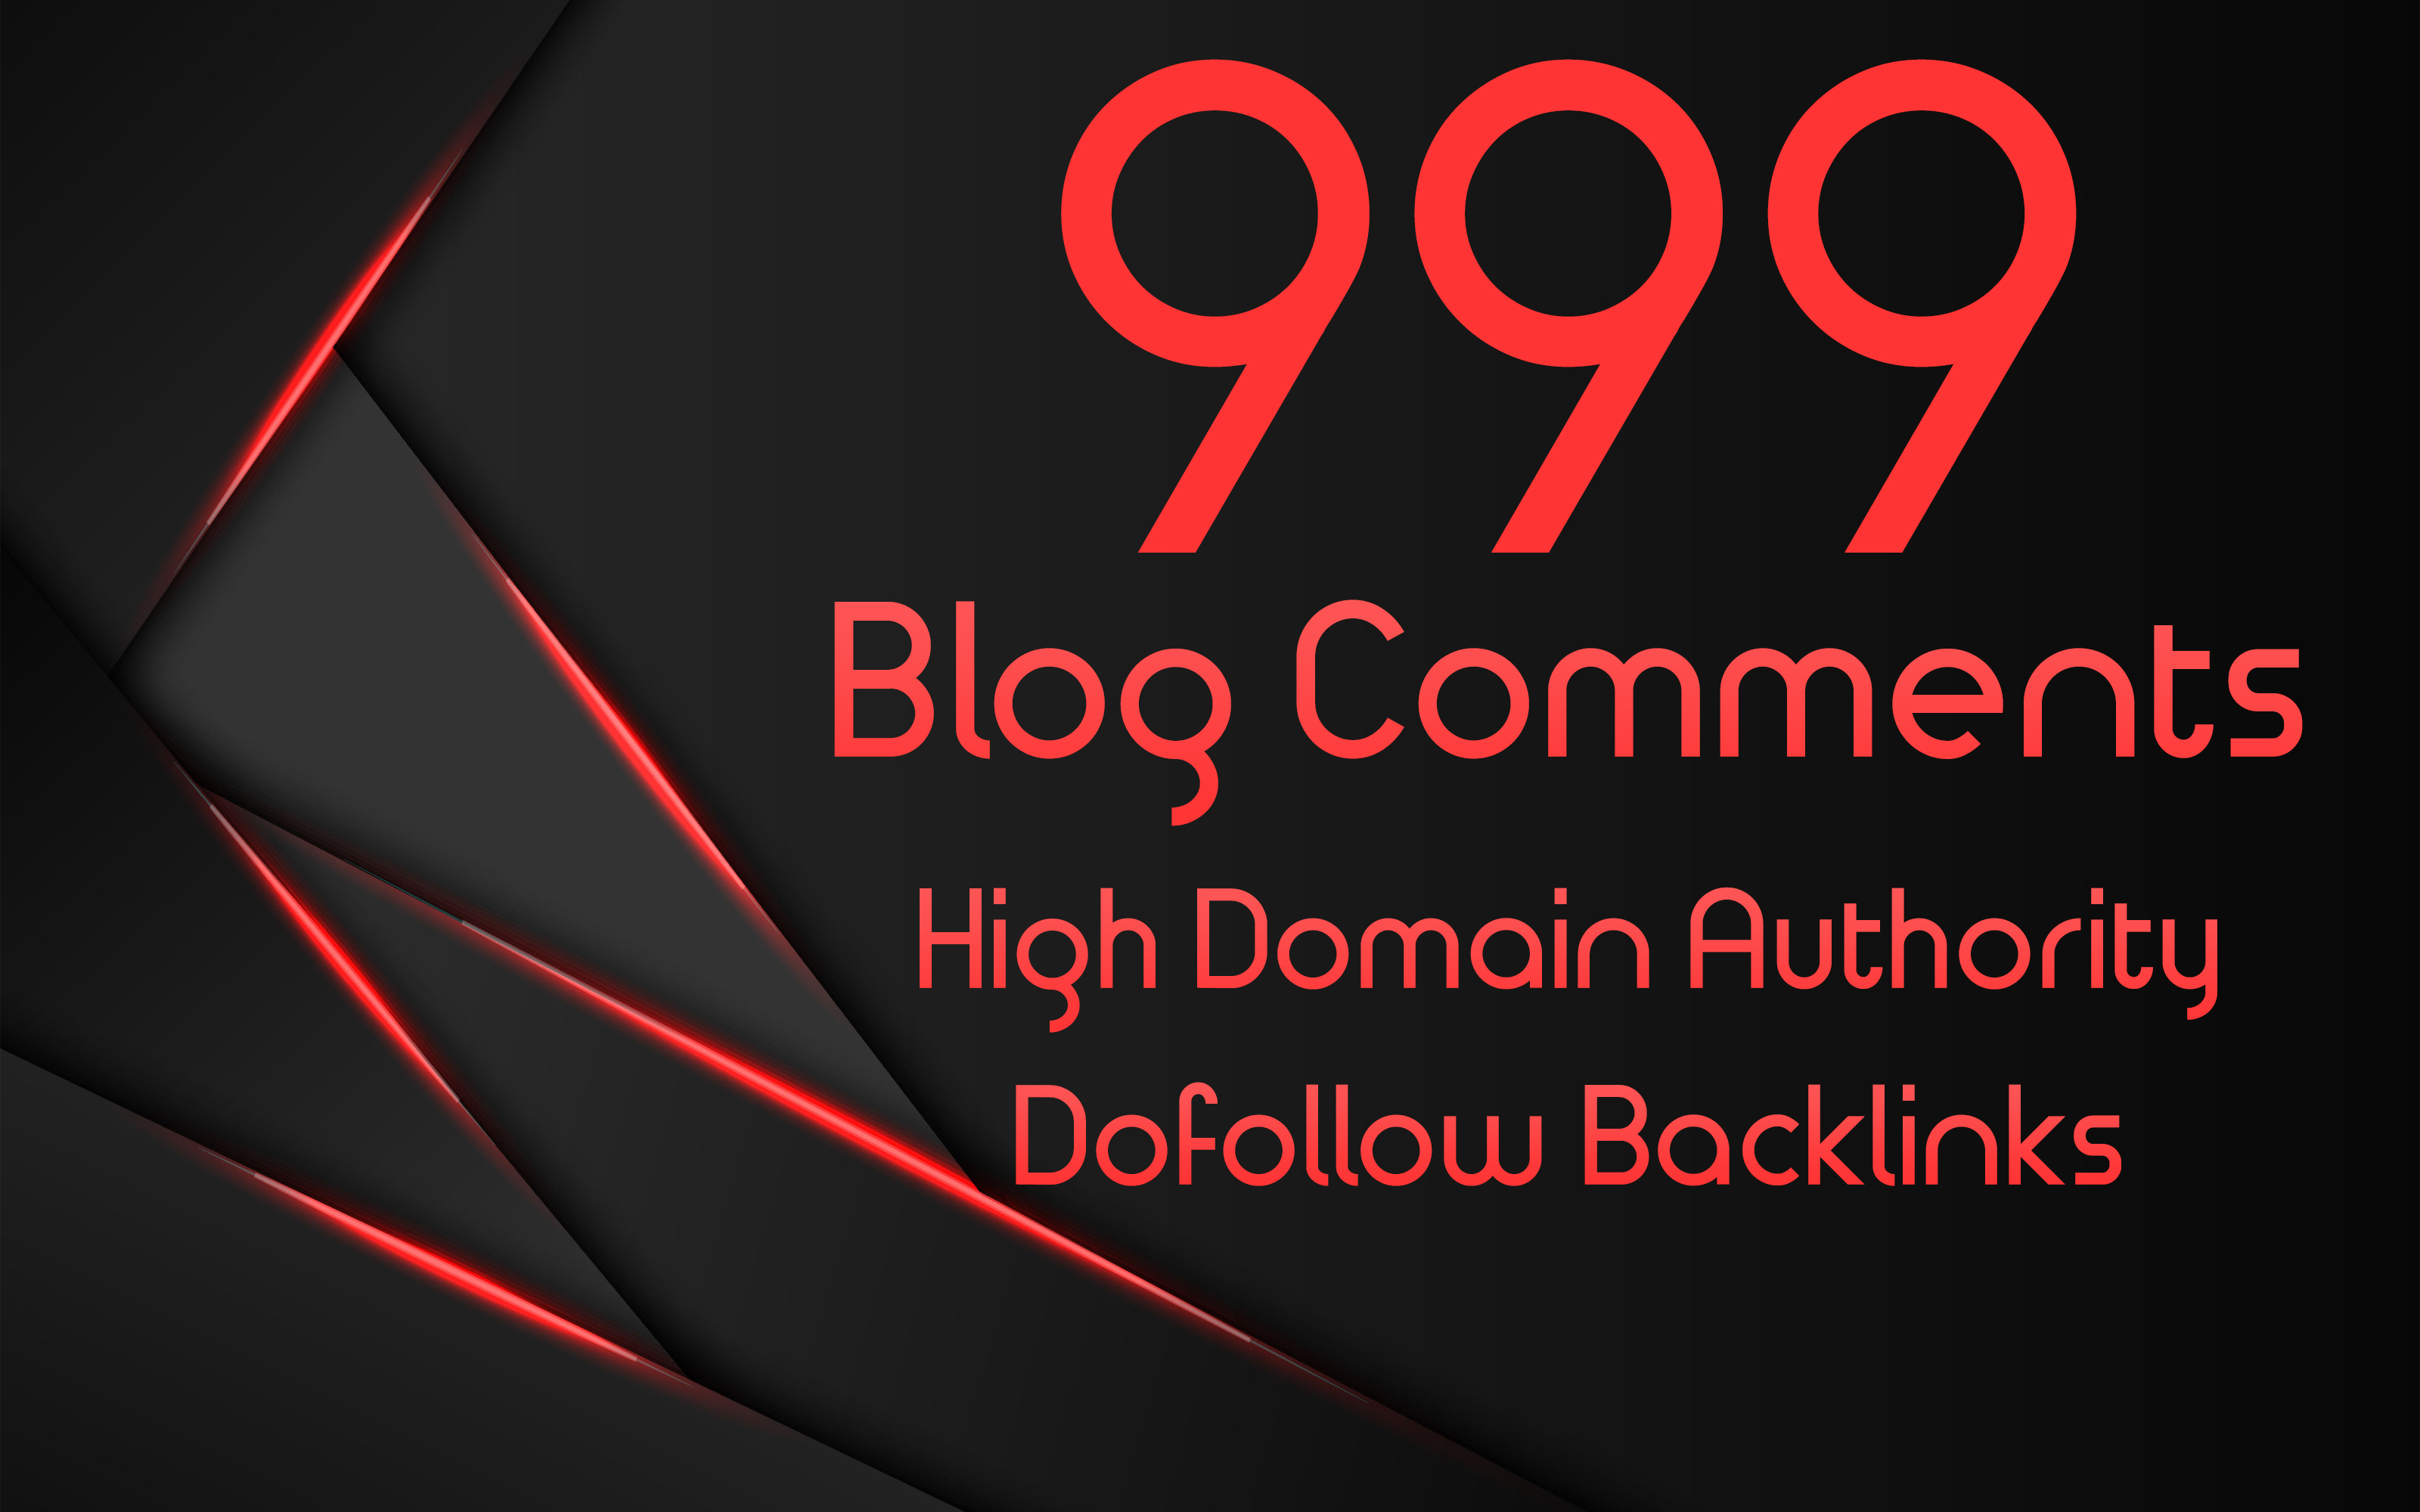 I Will Manually Create 999 Dofollow Blog Comments Backlinks On High DA-PA